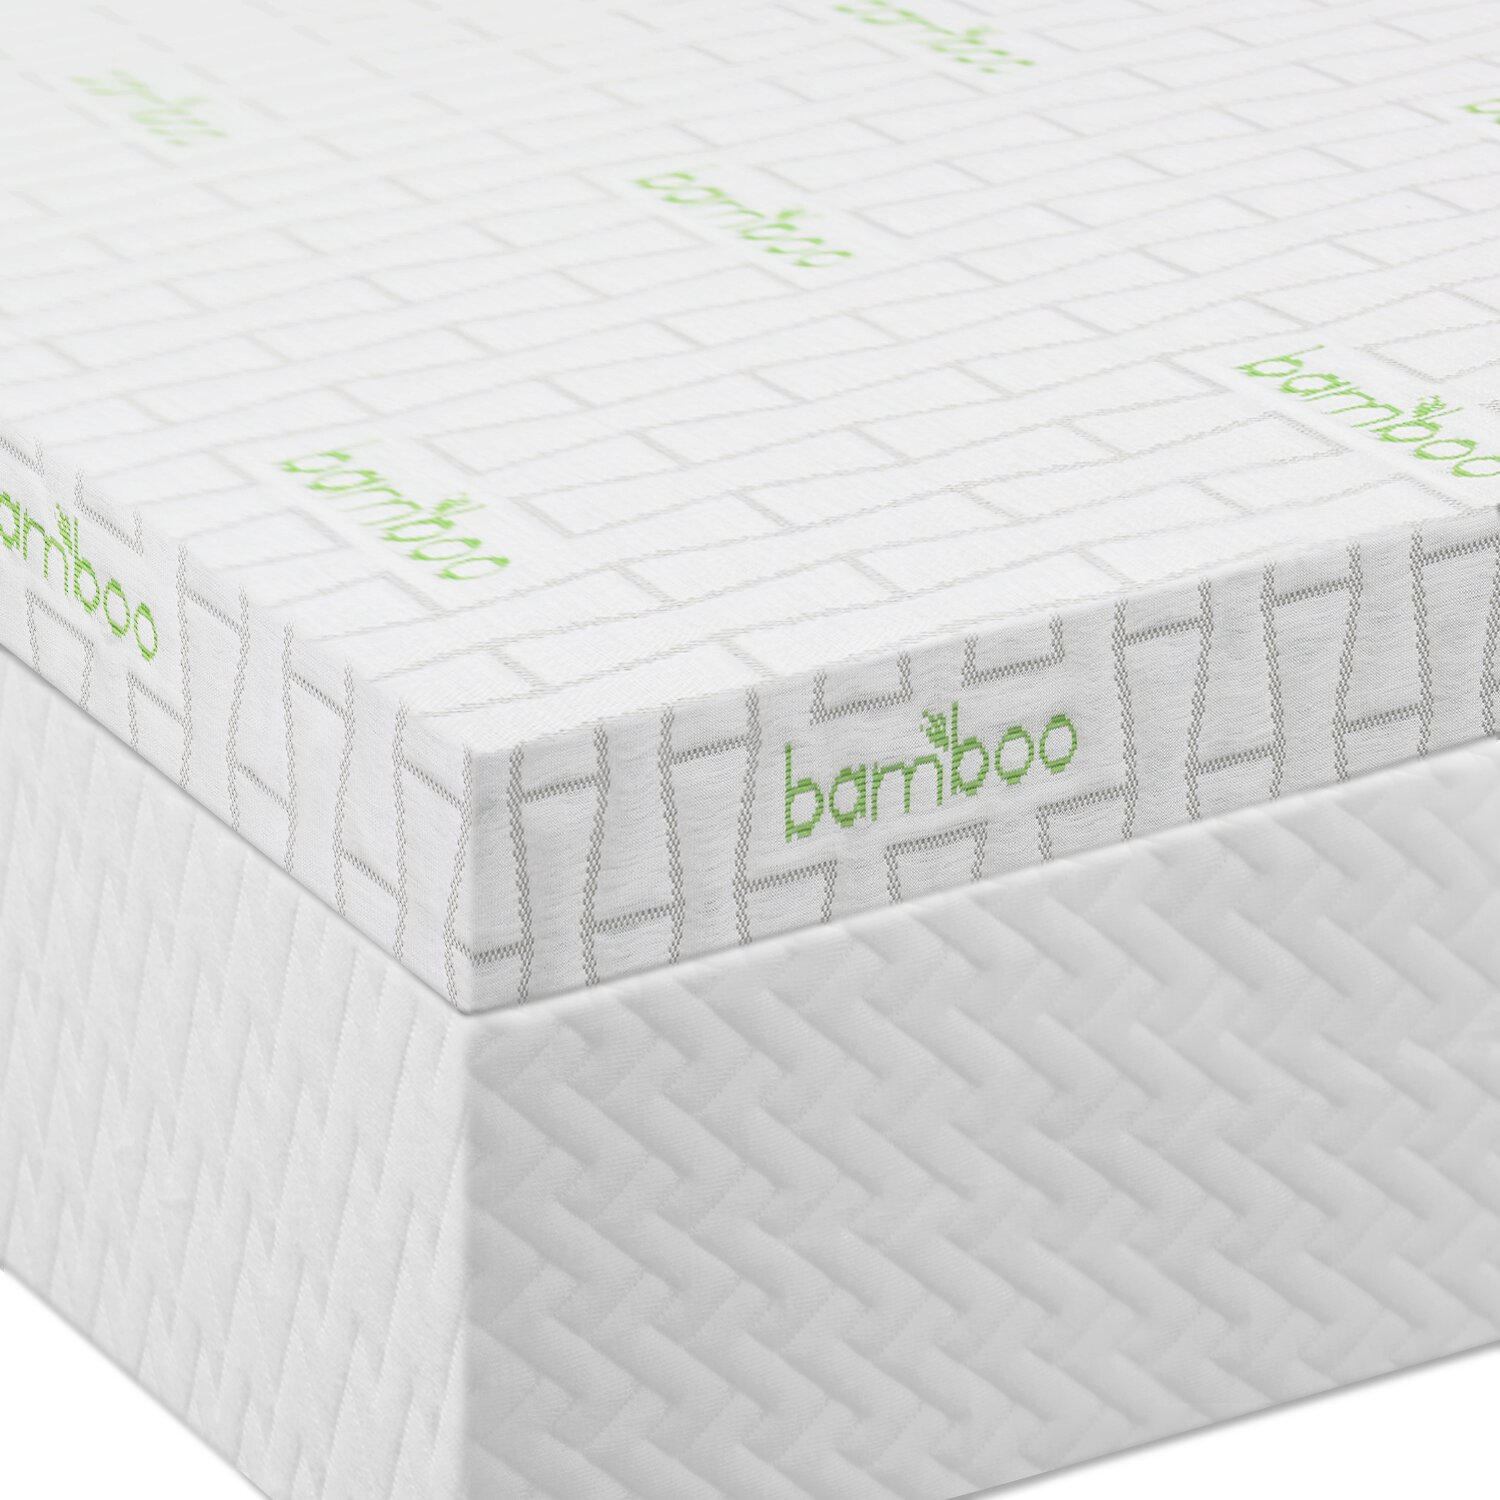 Where To Buy Eclipse 8 Inch RV Memory Foam Mattress QUEEN